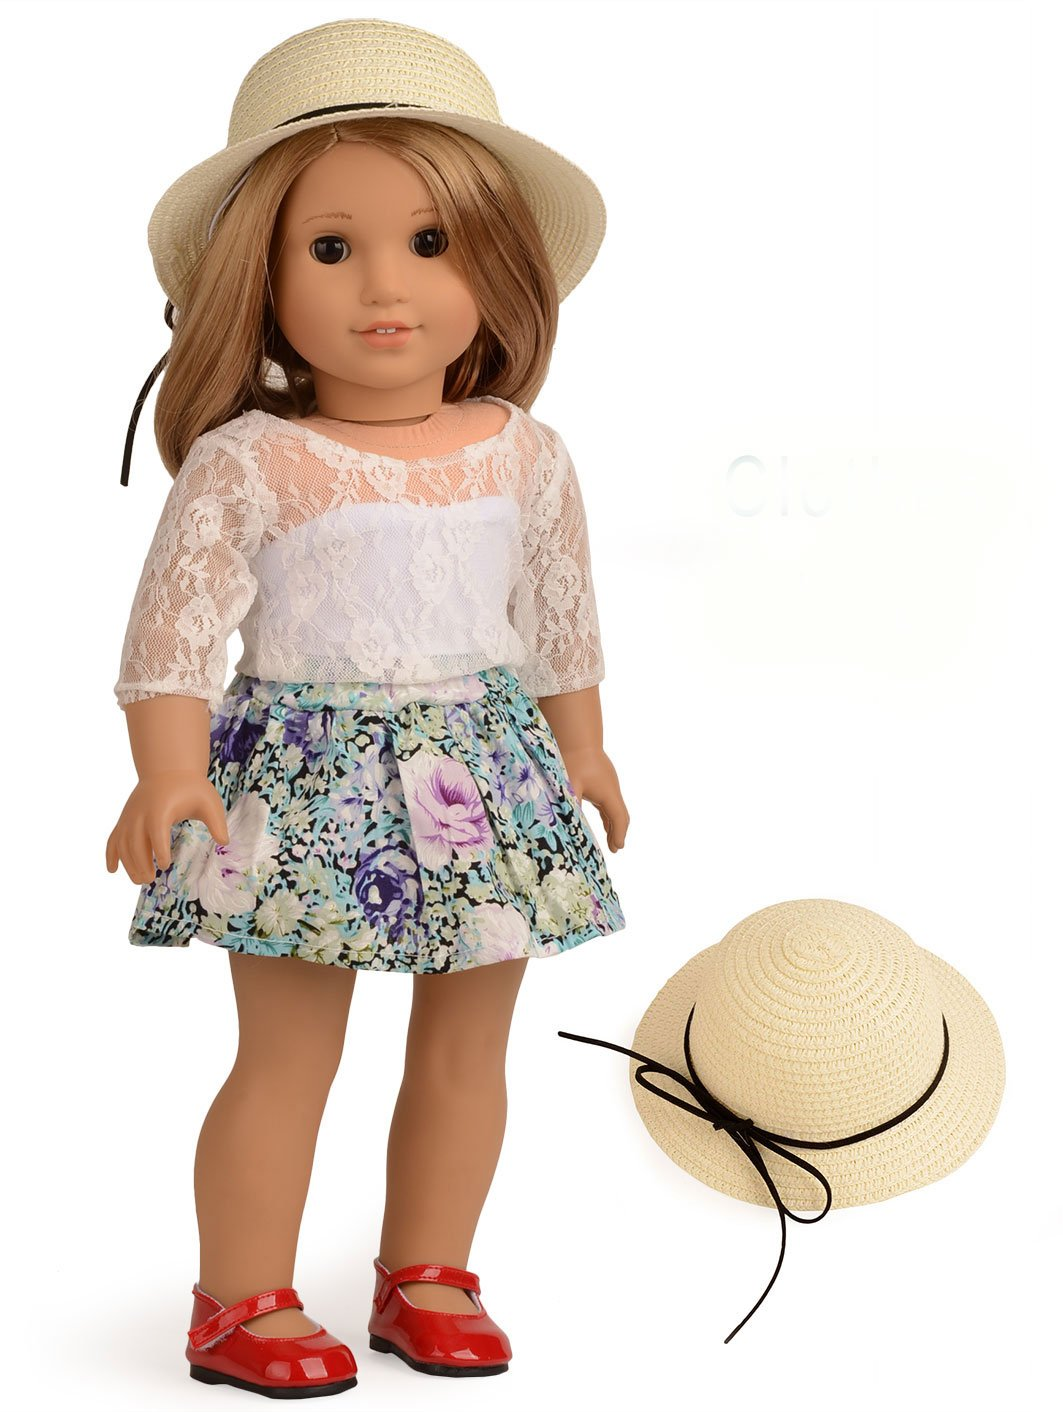 Sweet Dolly Doll Clothes Lace Top Floral Skirt Set for 18 Inches American Girl Dolls